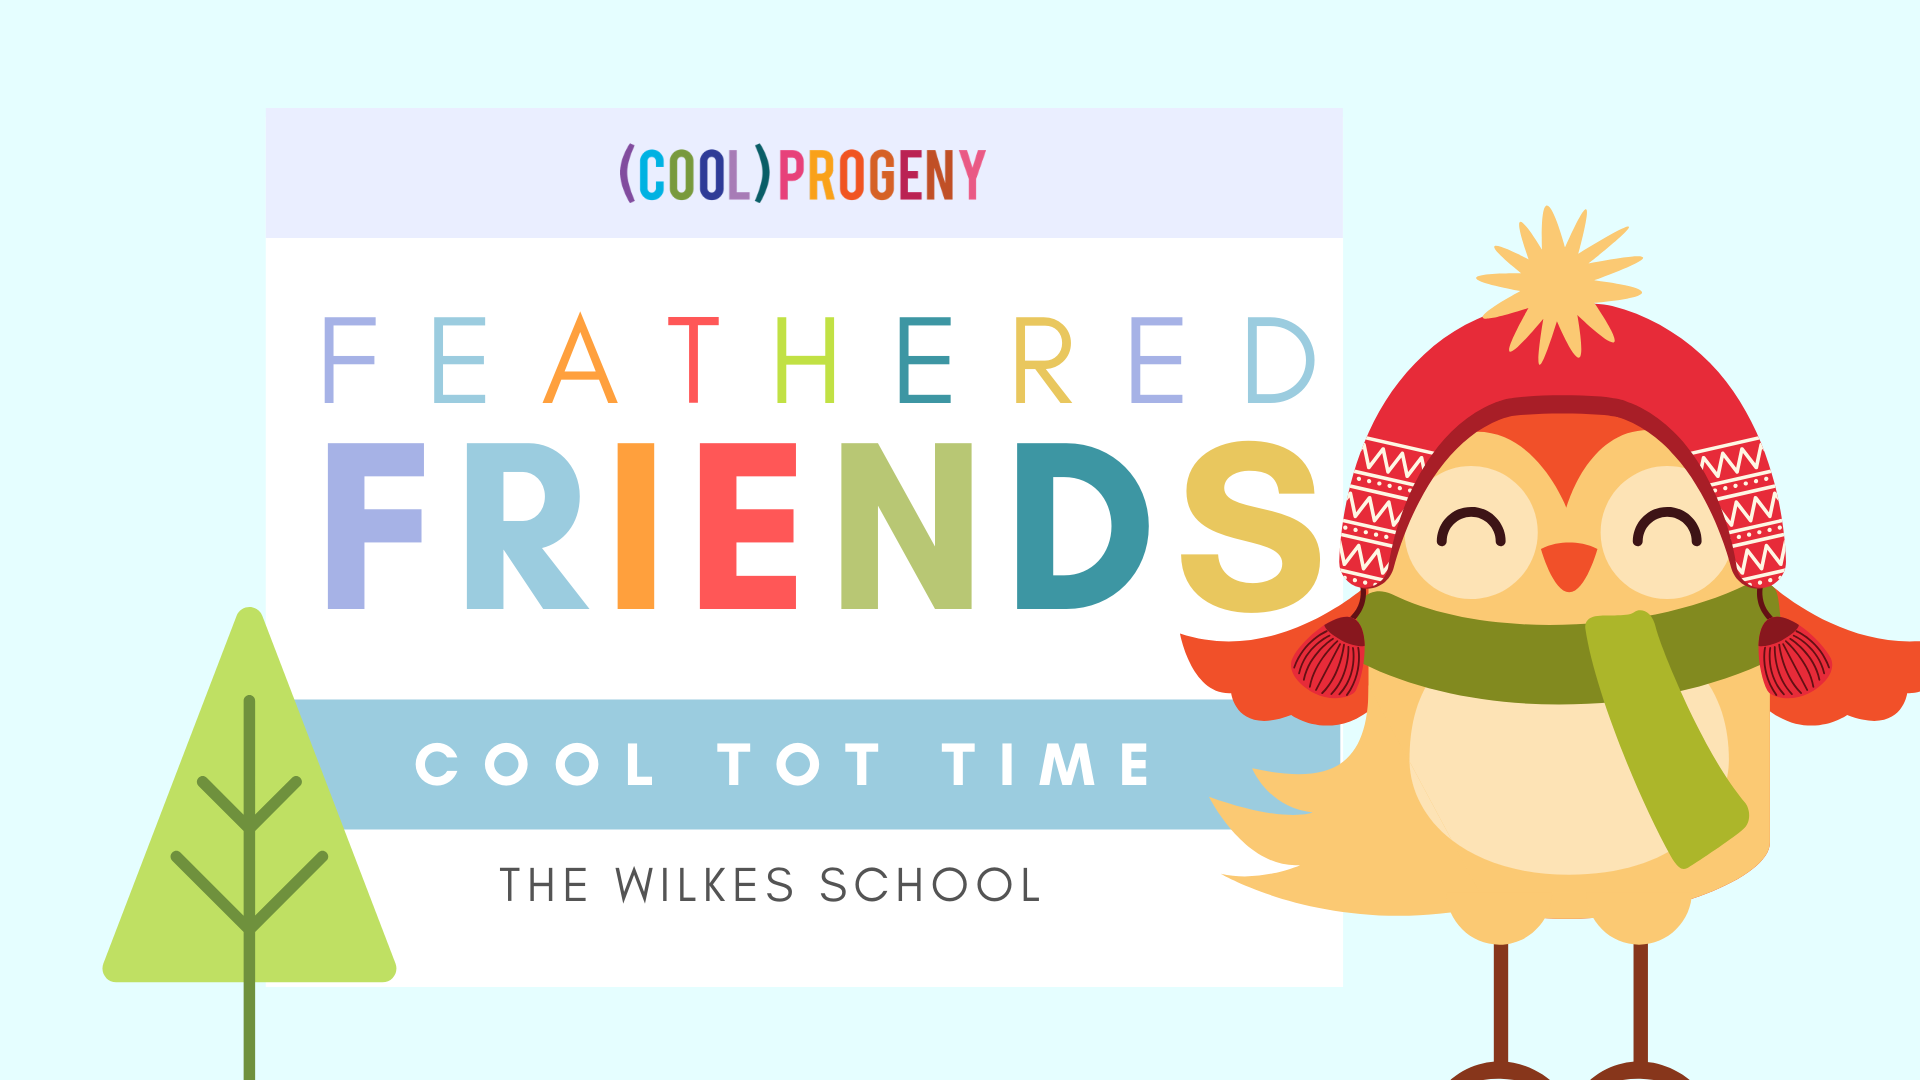 Cool Tot Time: Feathered Friends